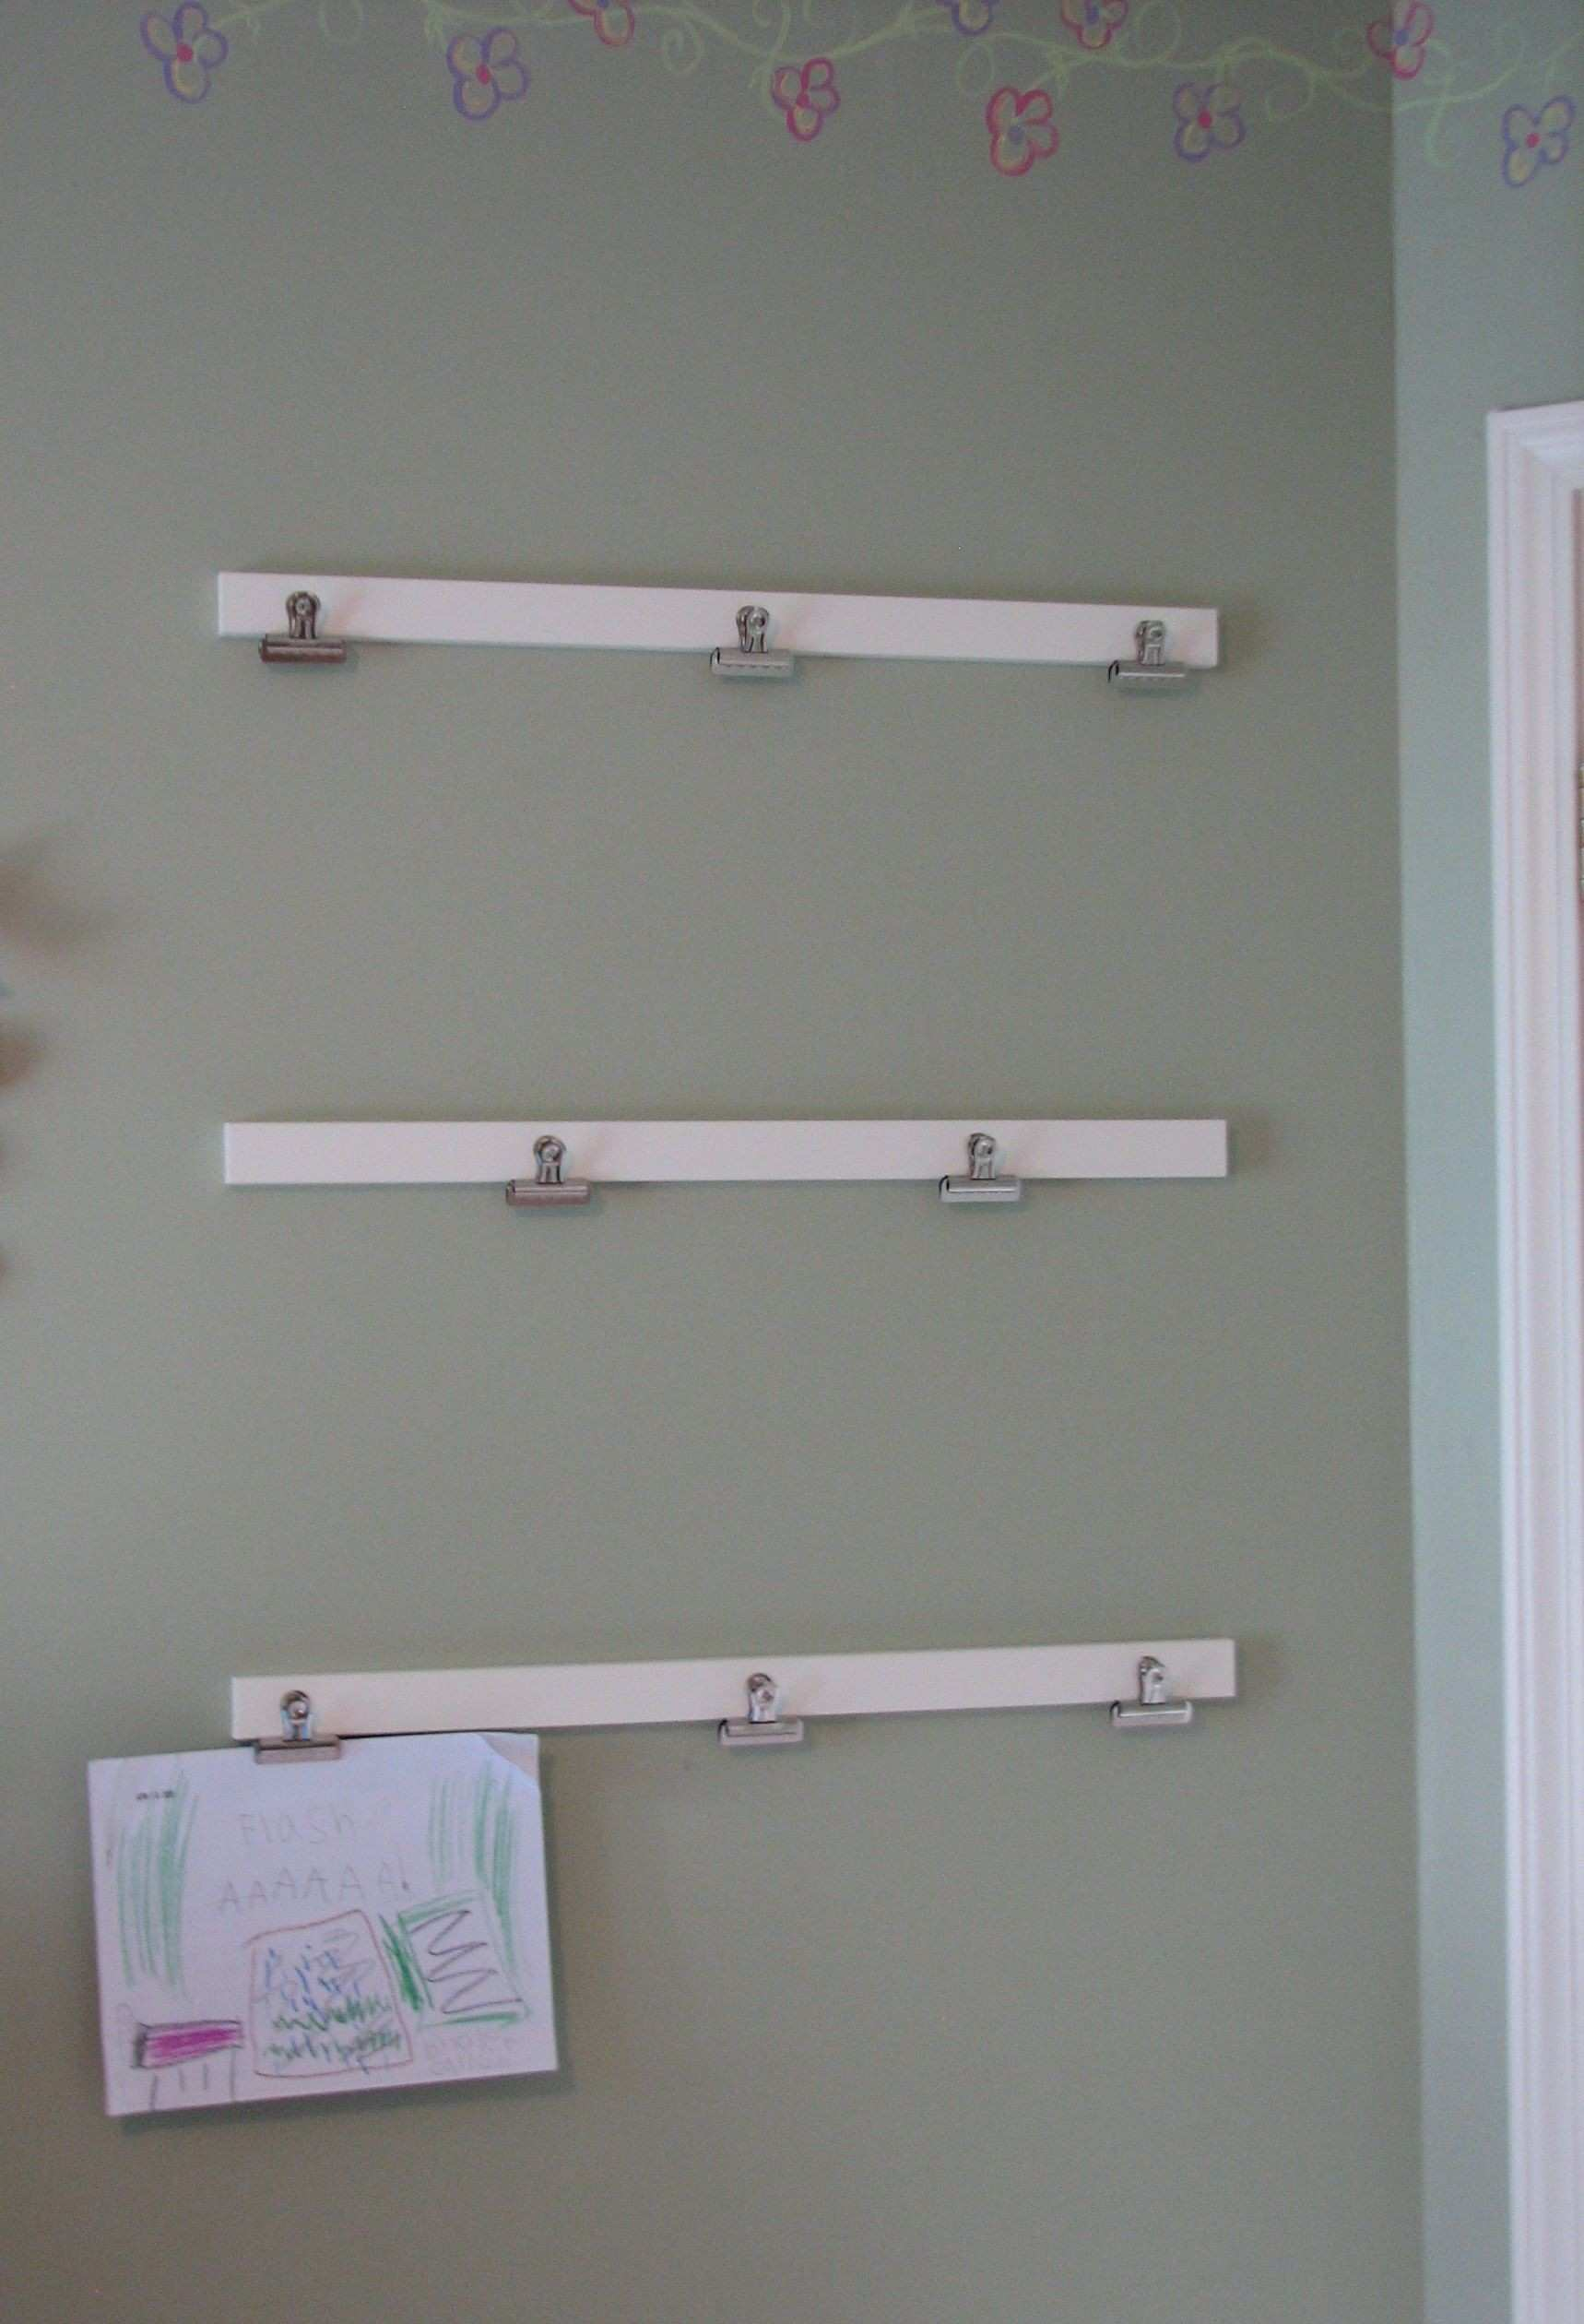 Art display boards attach with mand Velcro strips